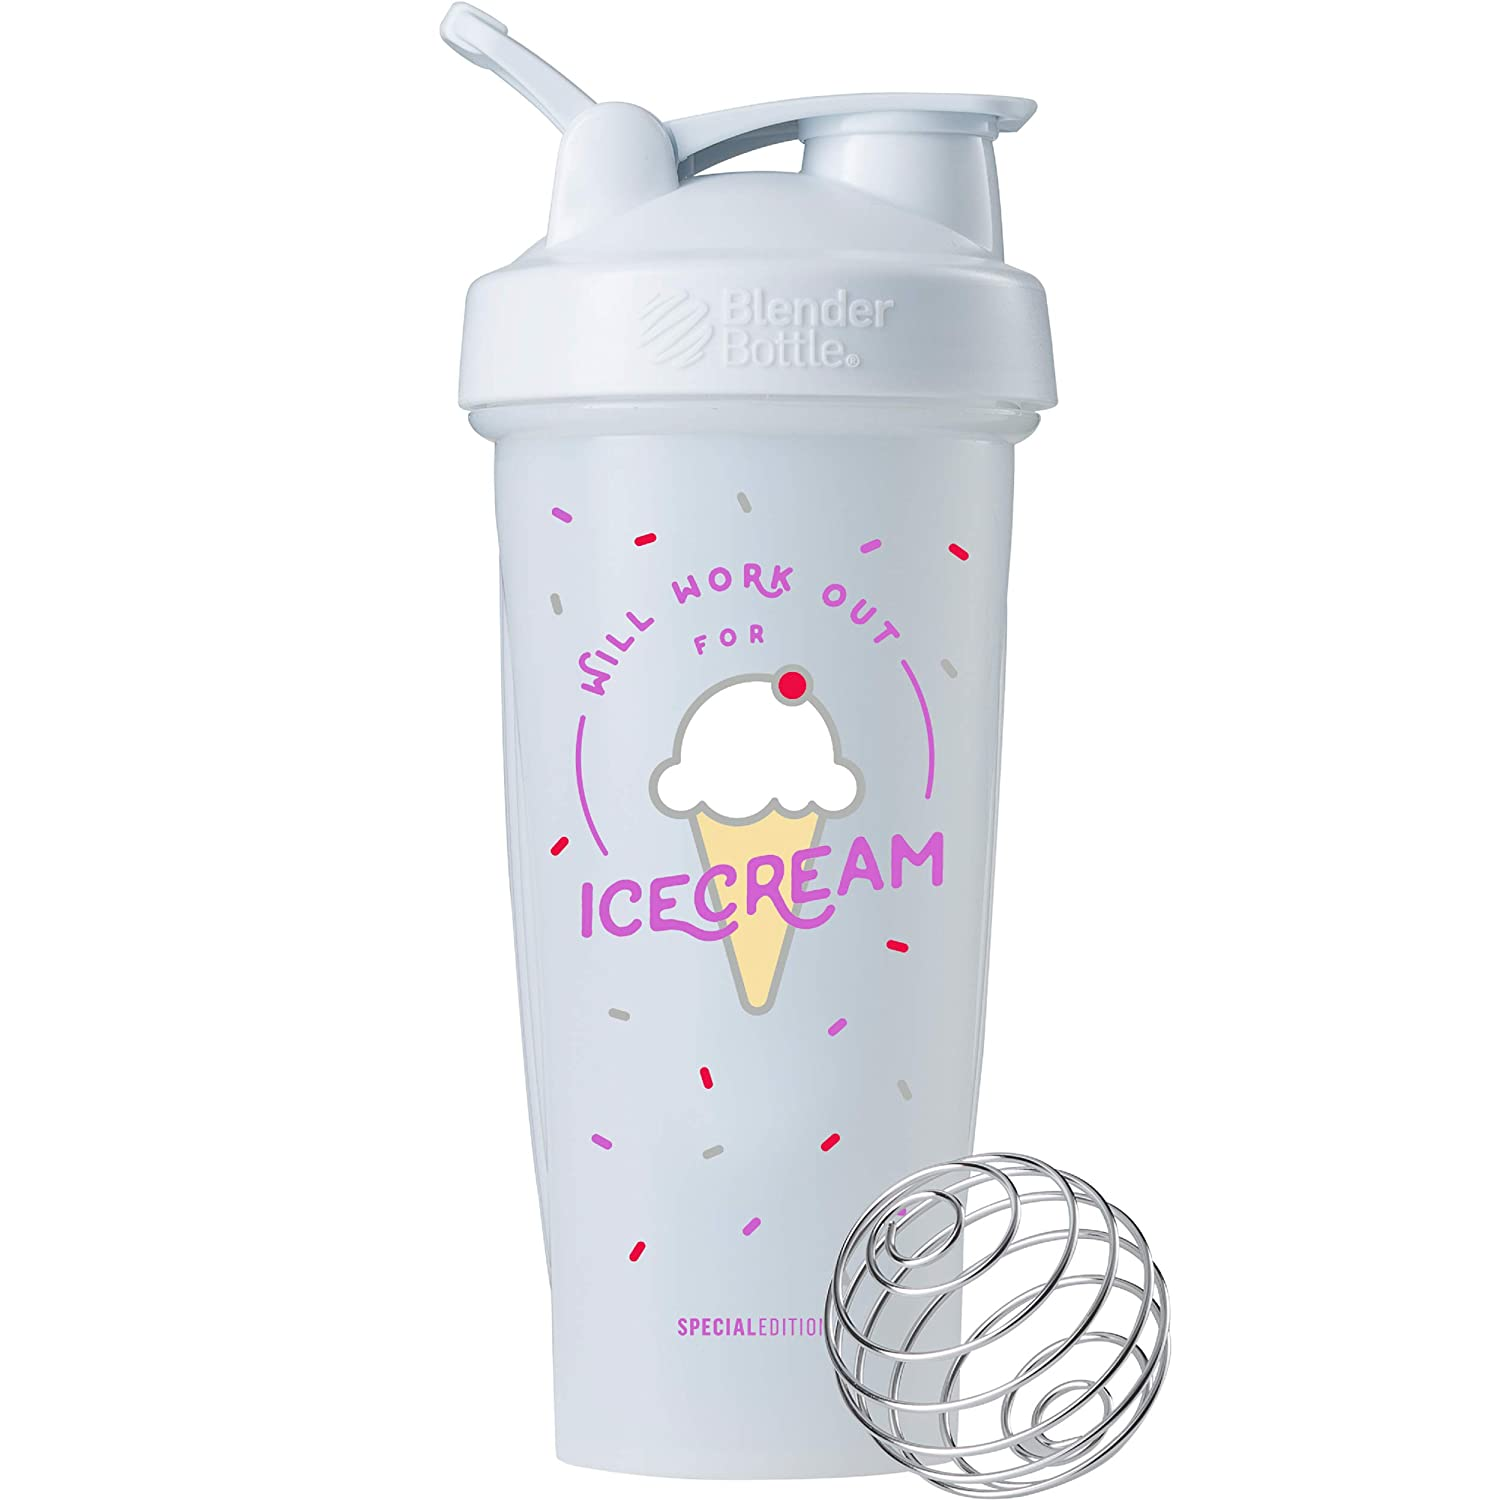 BlenderBottle Just for Fun Classic 28-Ounce Shaker Bottle, Will Work Out for Ice Cream